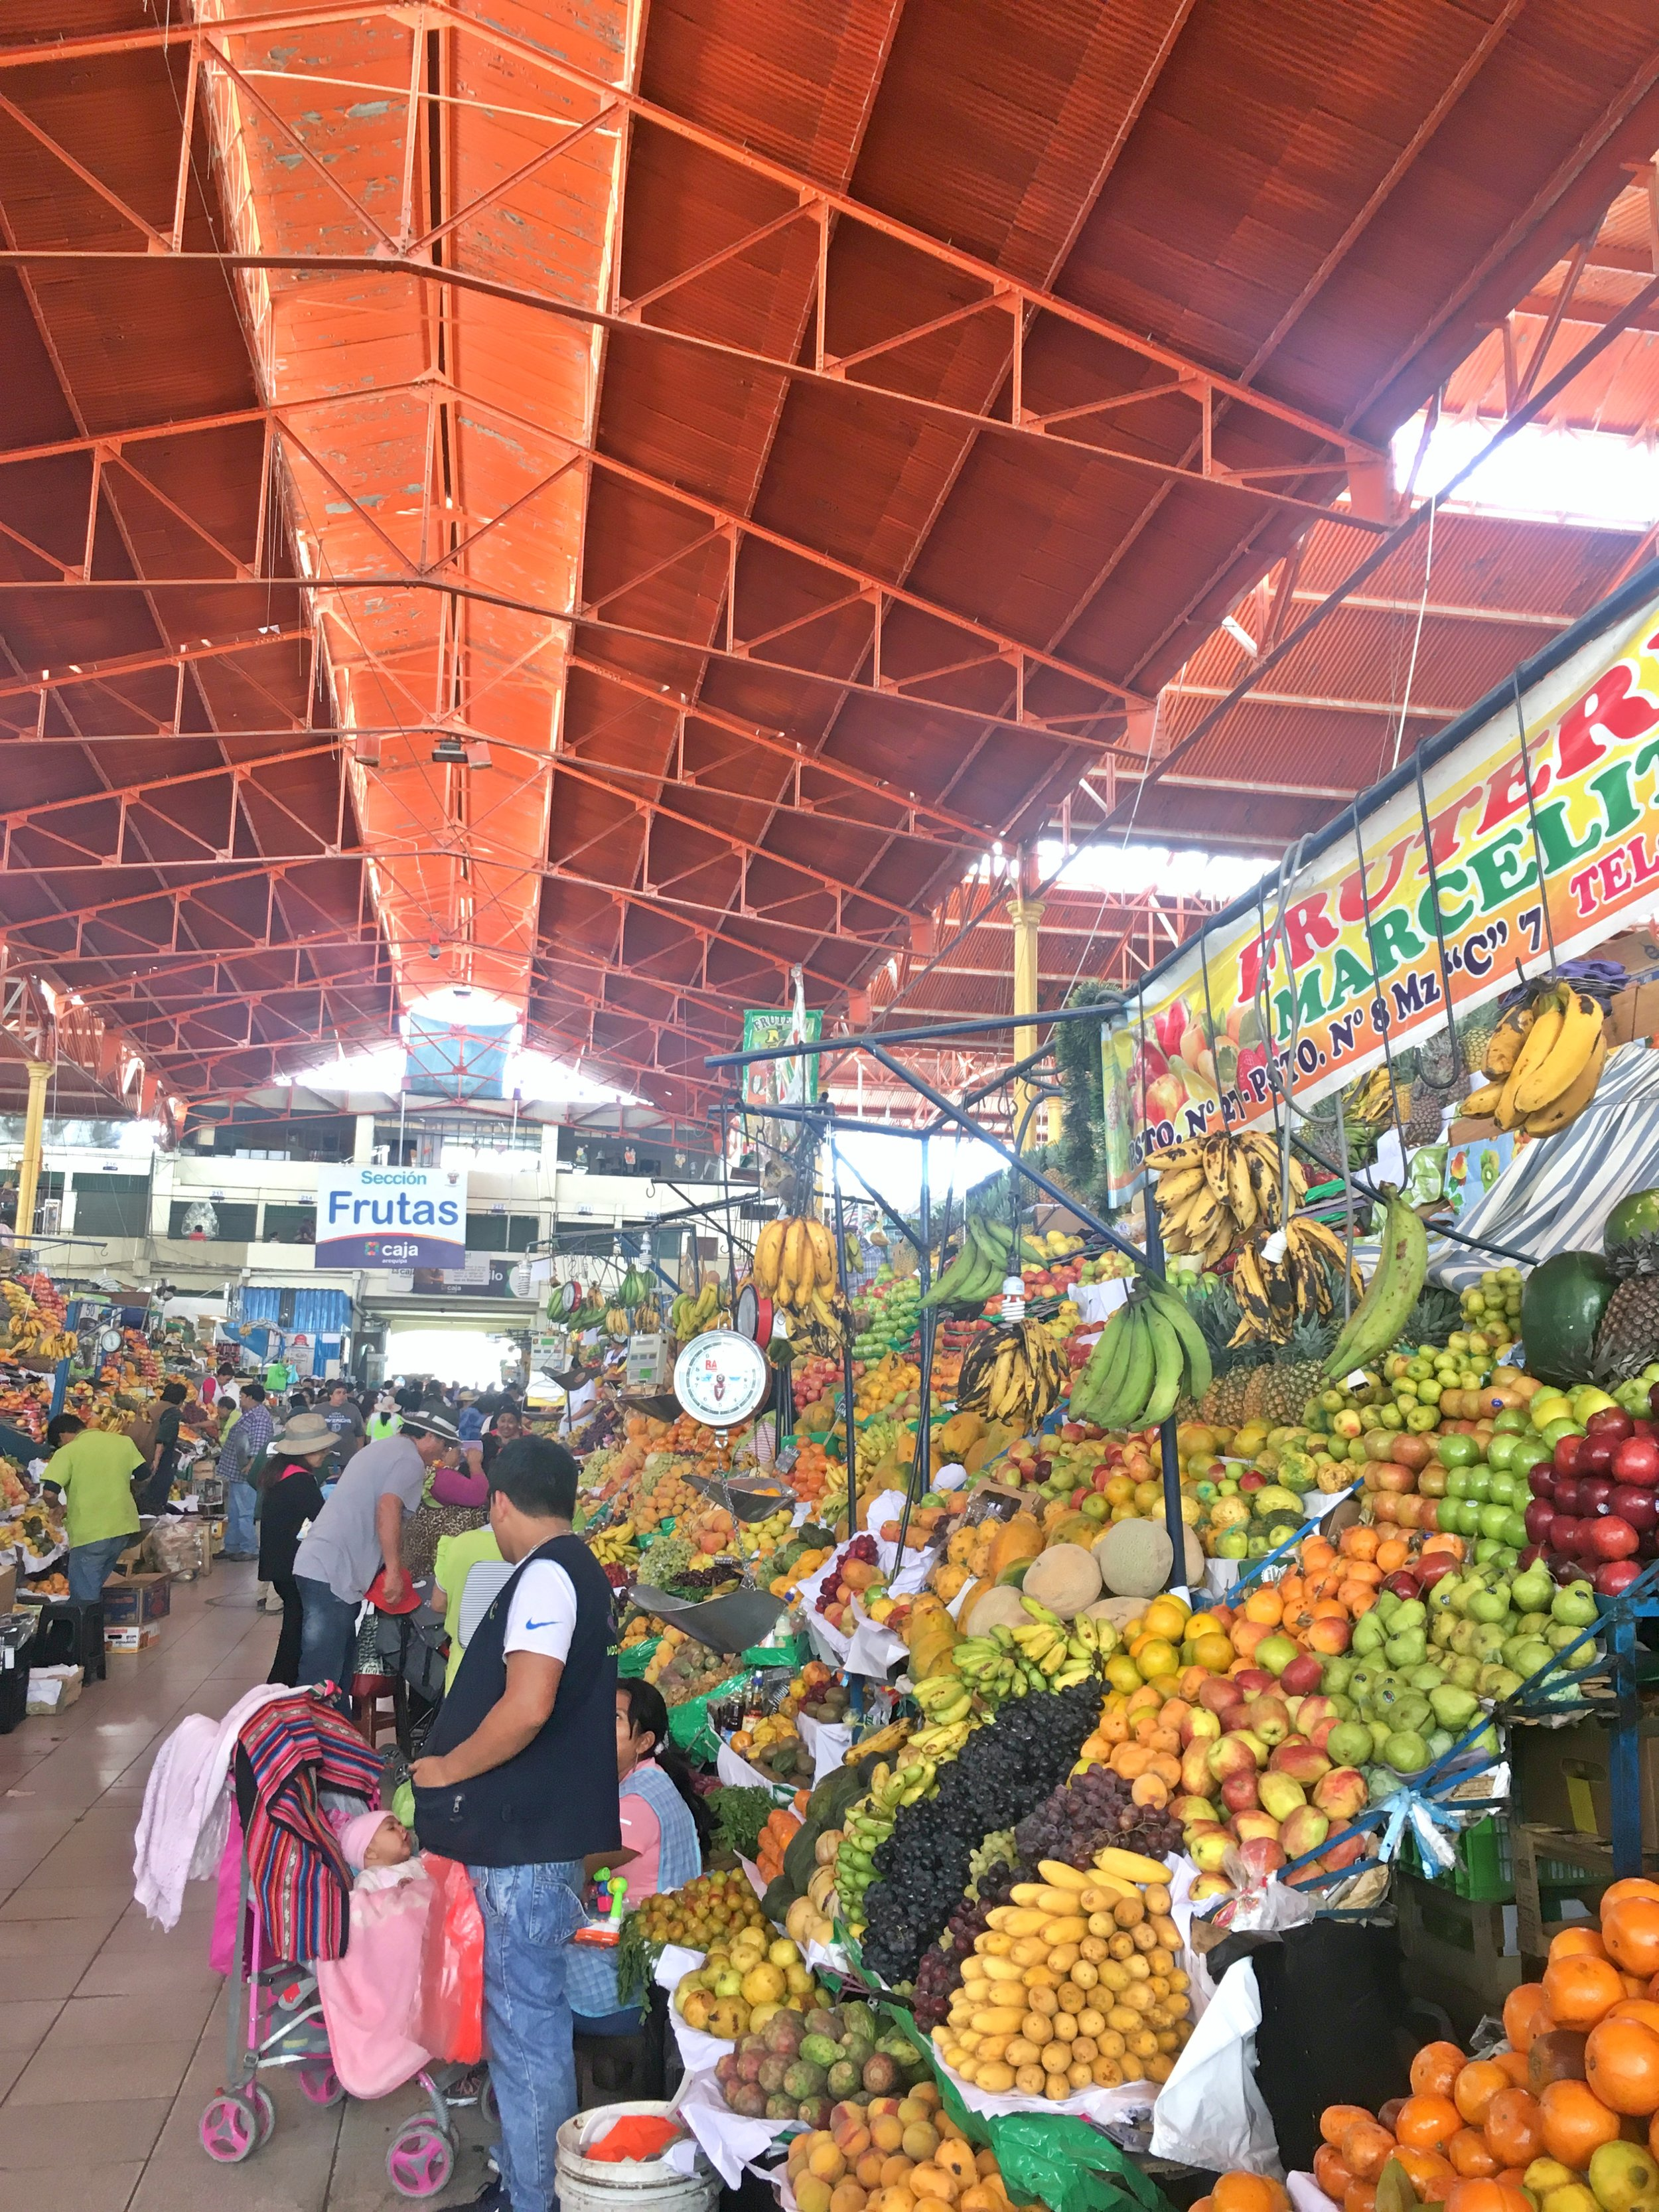 Entering the food mecca of Mercado San Camilo